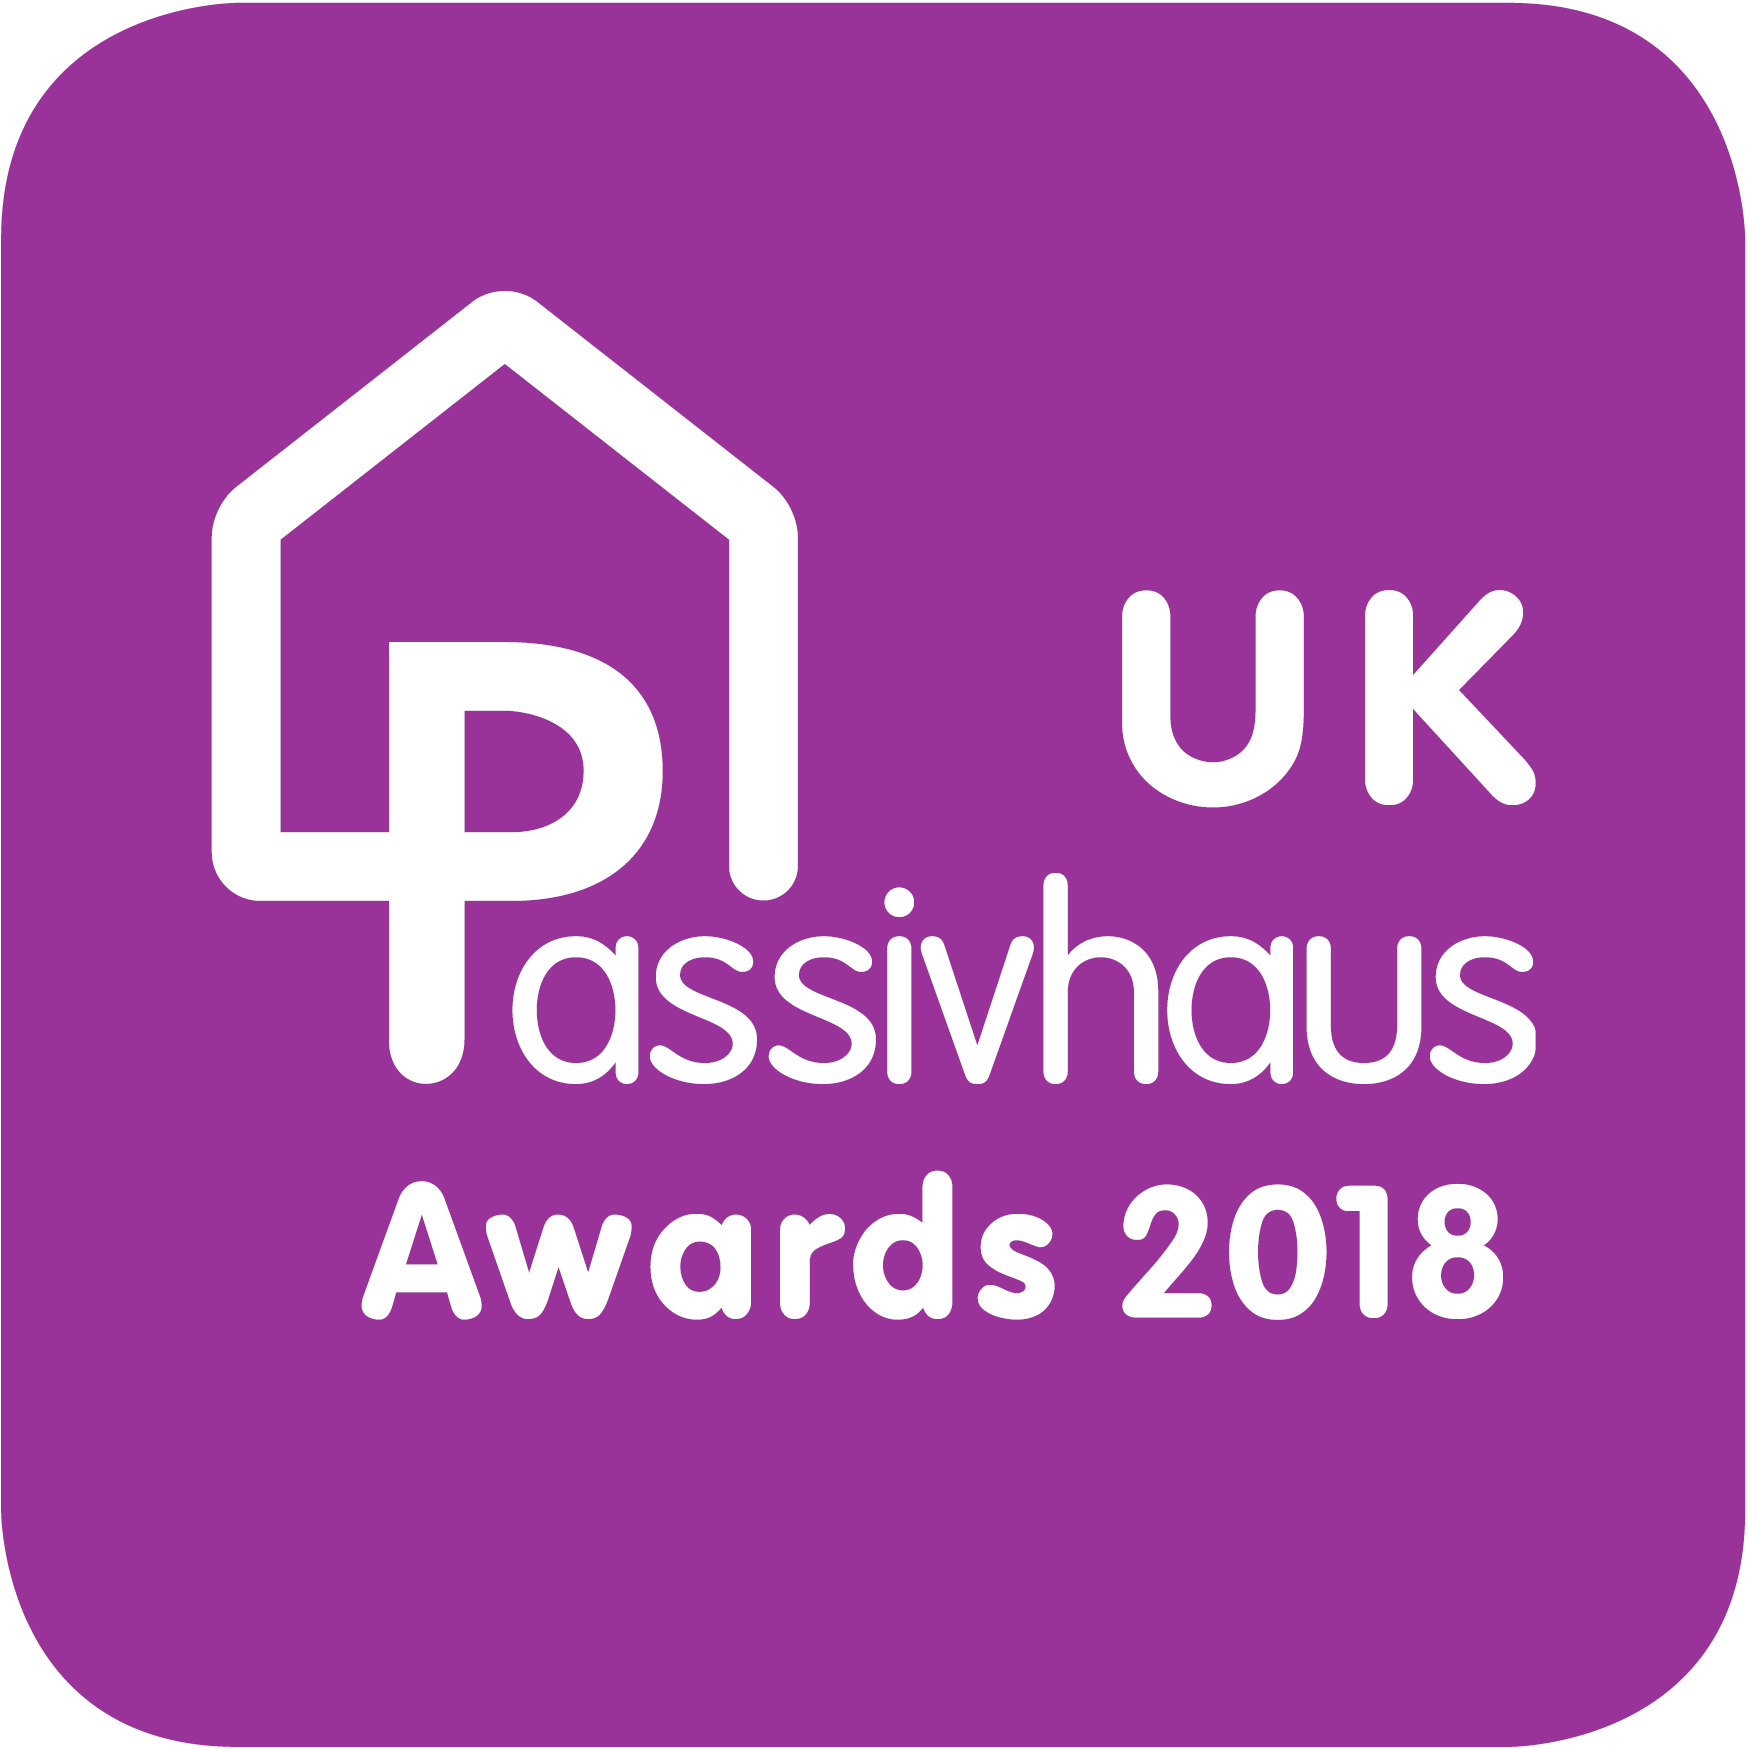 UK Passivhaus Awards 2018 logo